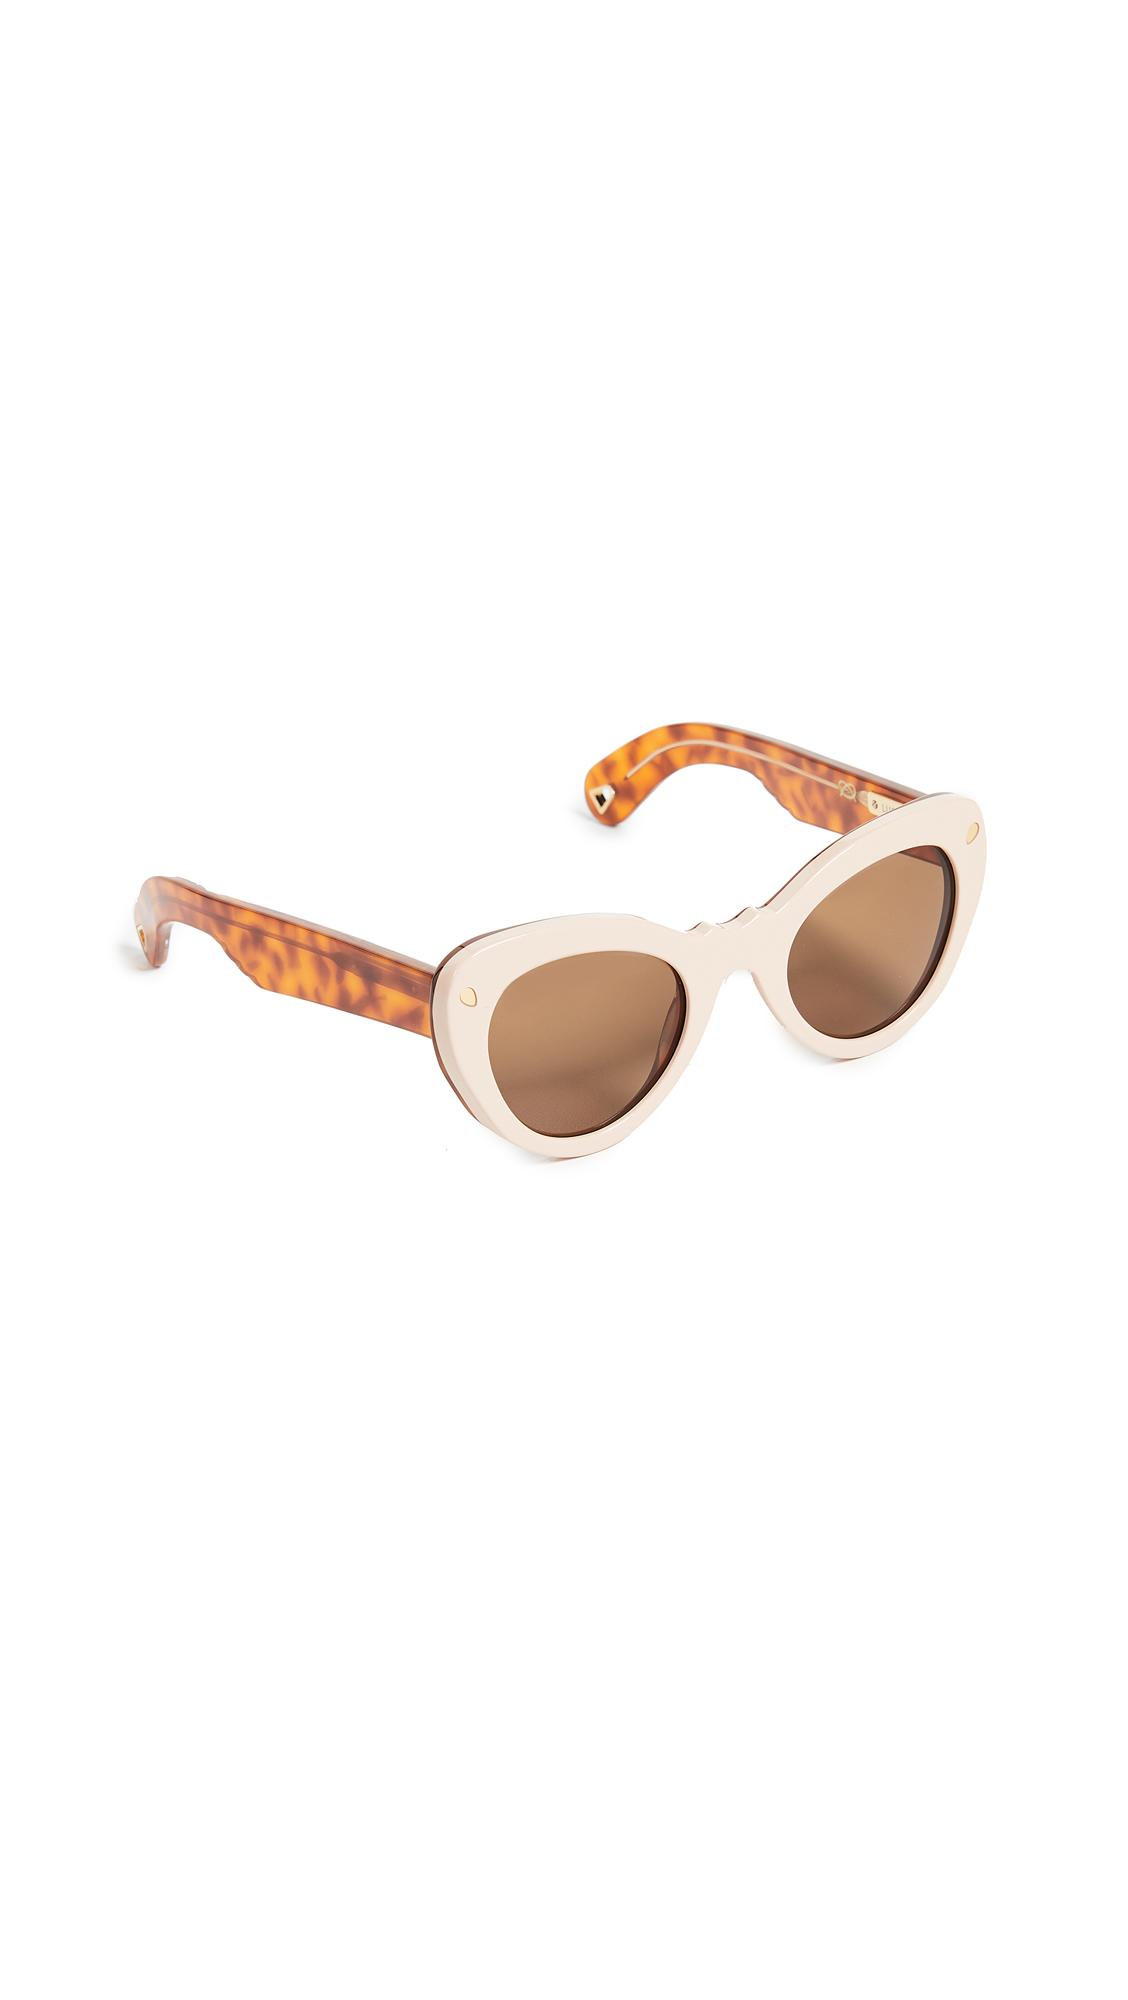 8c3e67d88fd8d Lucy Folk Wingspan Sunglasses In Conch